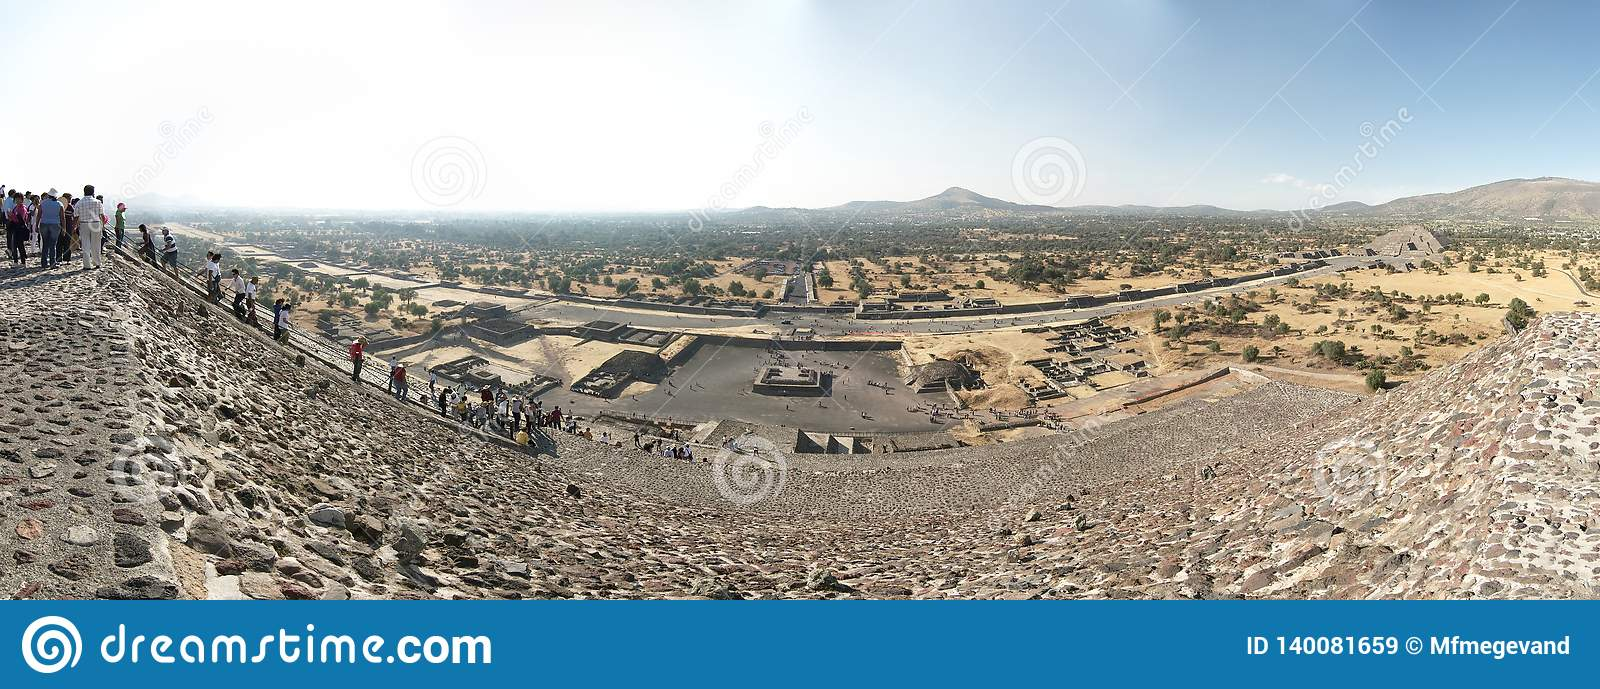 Panoramic view of the Teotihuacan pyramids, a UNESCO World Heritage Site.